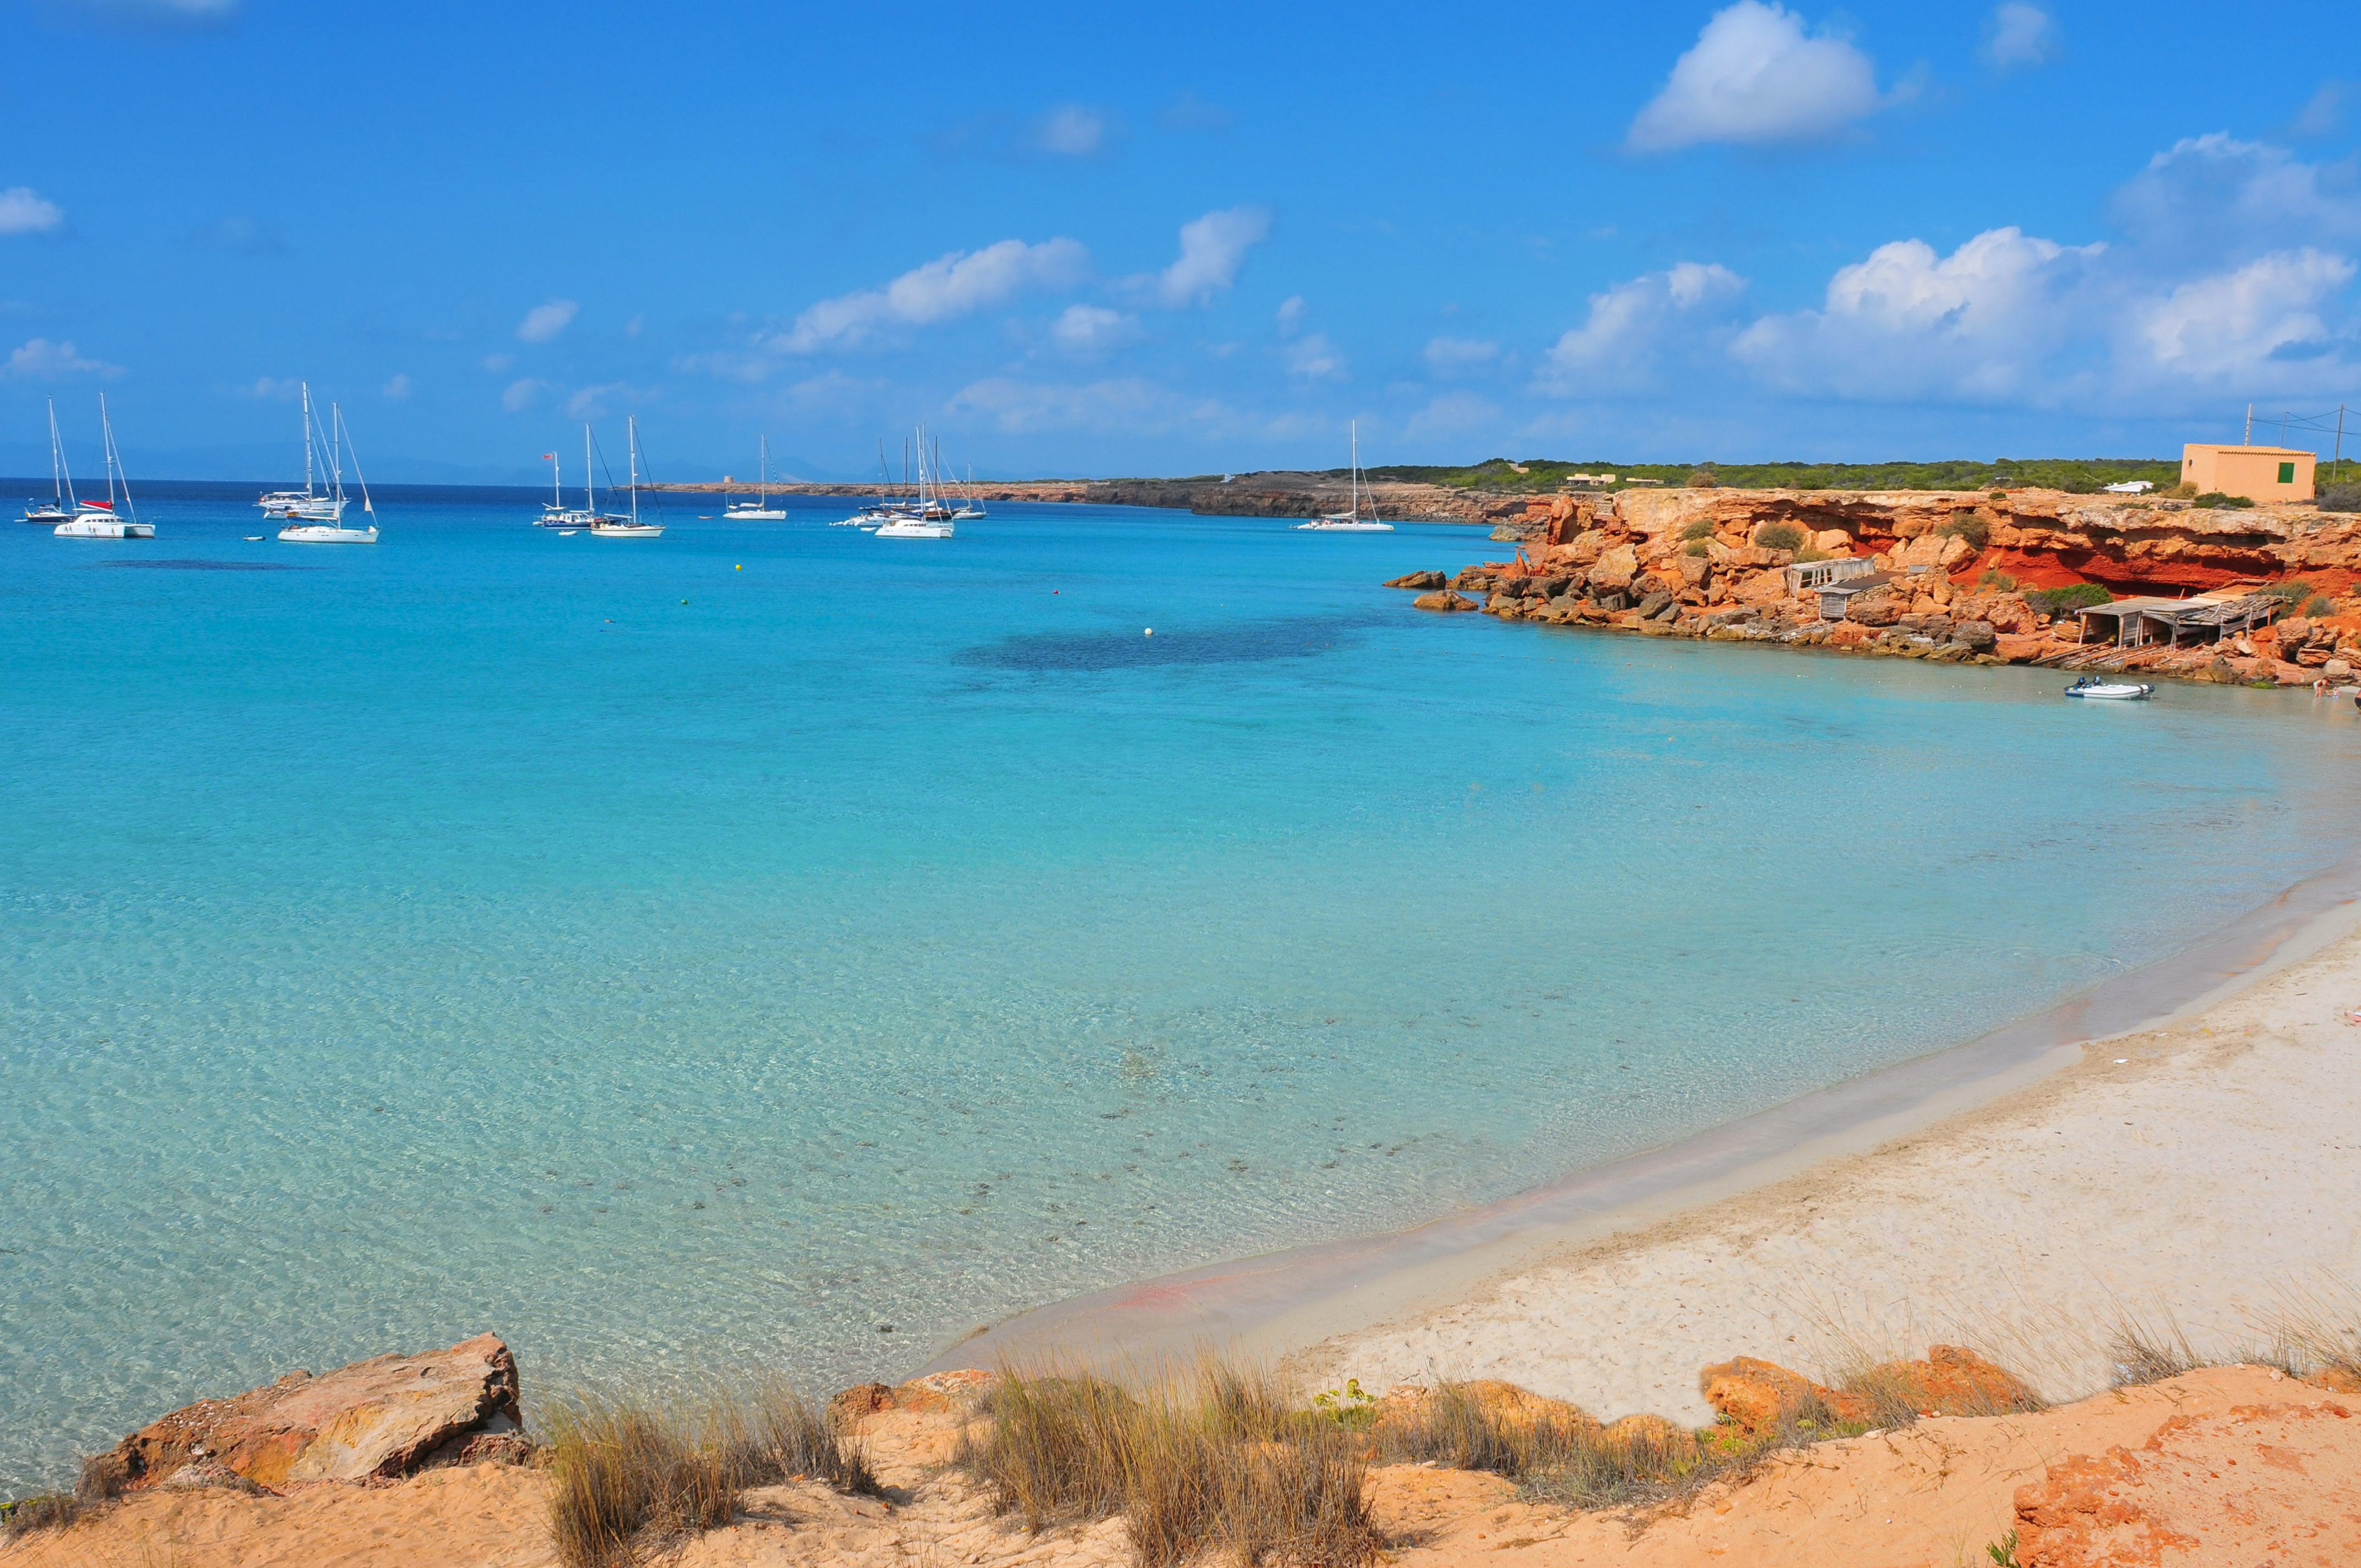 Cala Saona Beach in Formentera, Balearic Islands, Spain